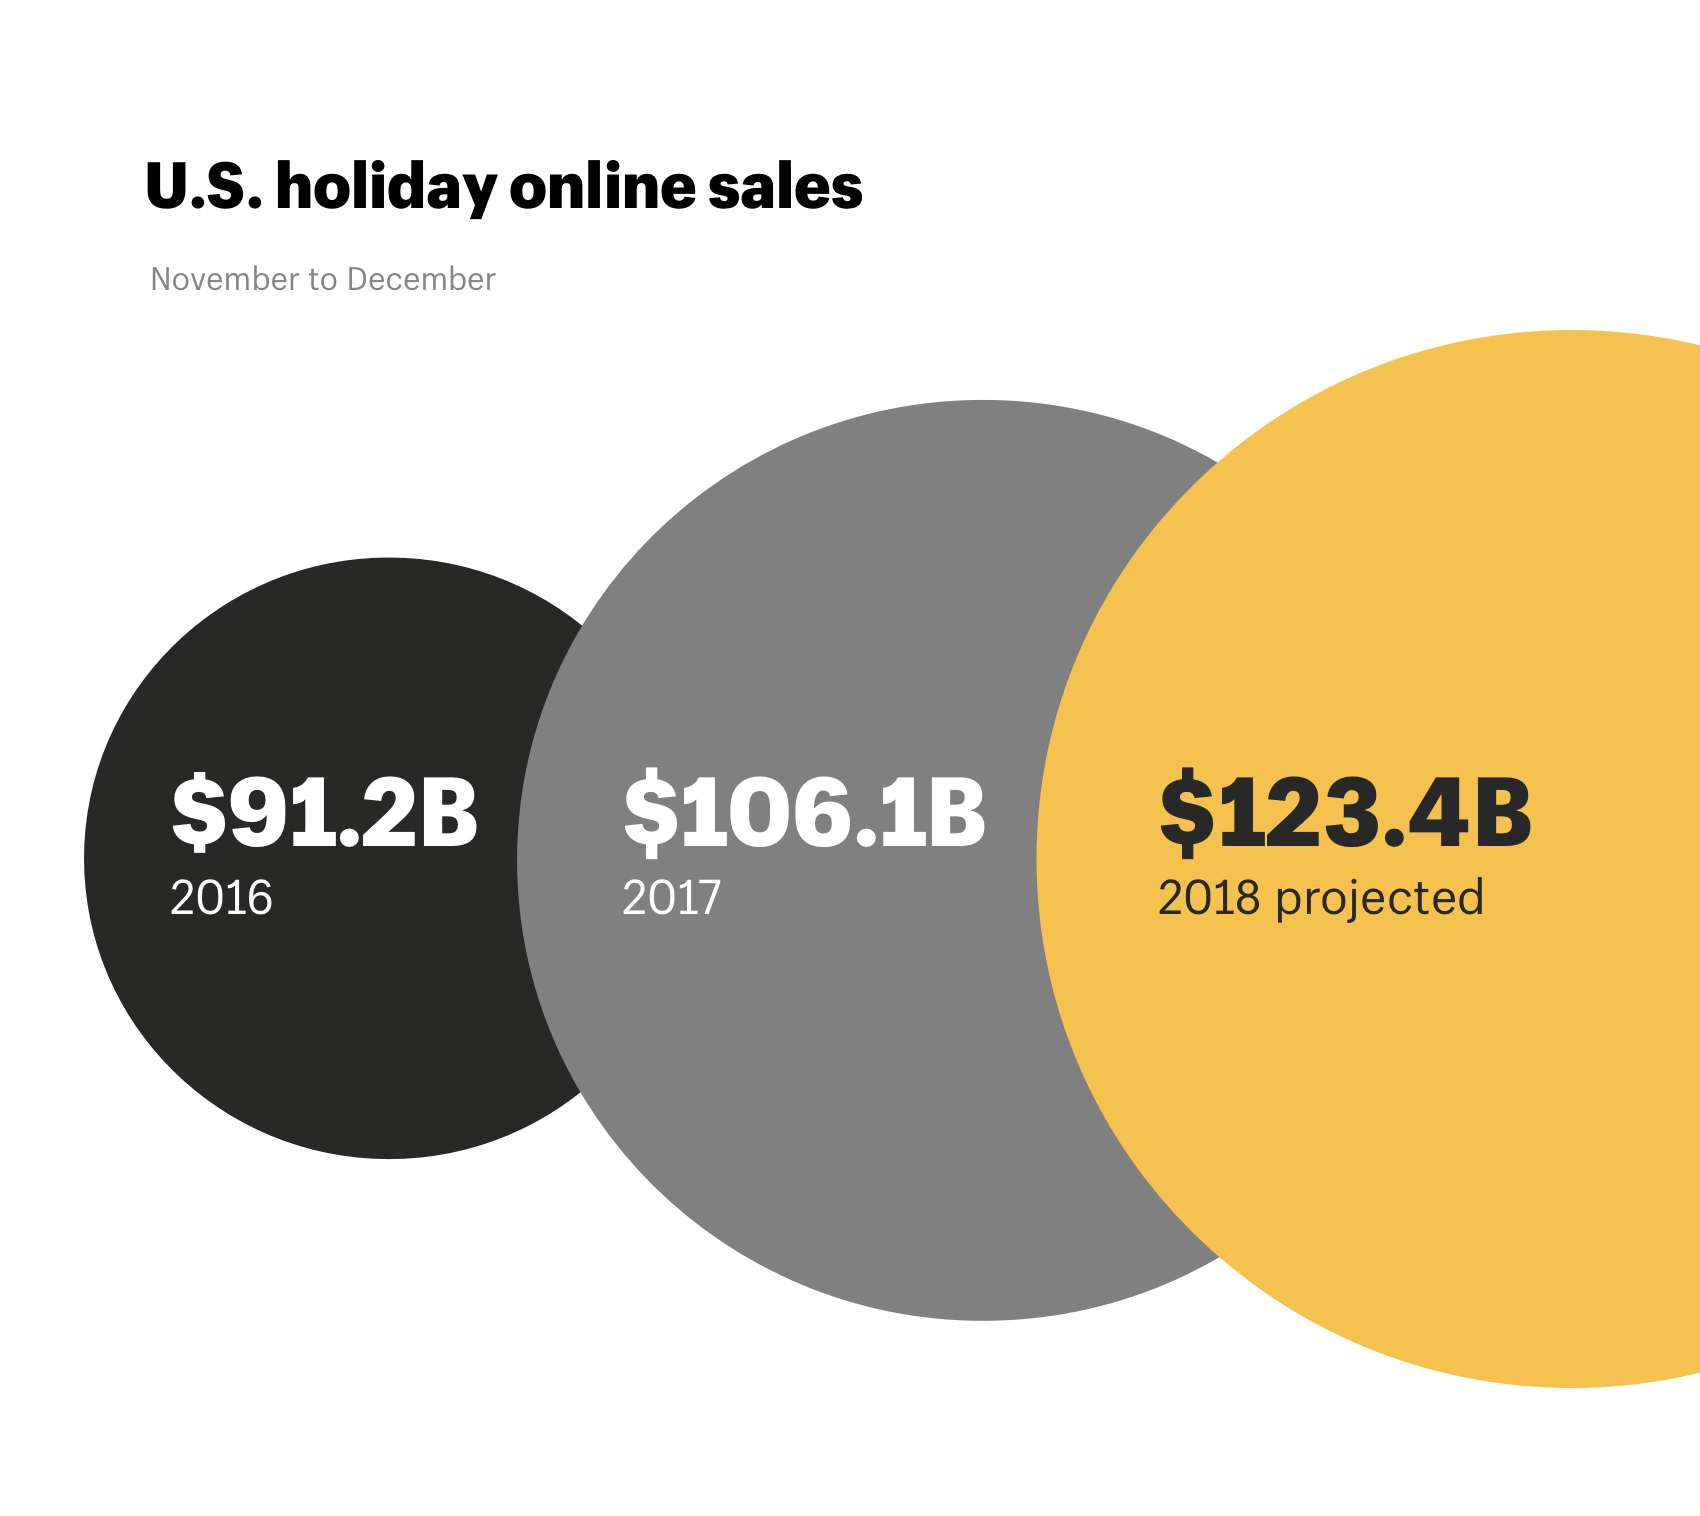 US holiday shopping online 2018, 2017, and 2016